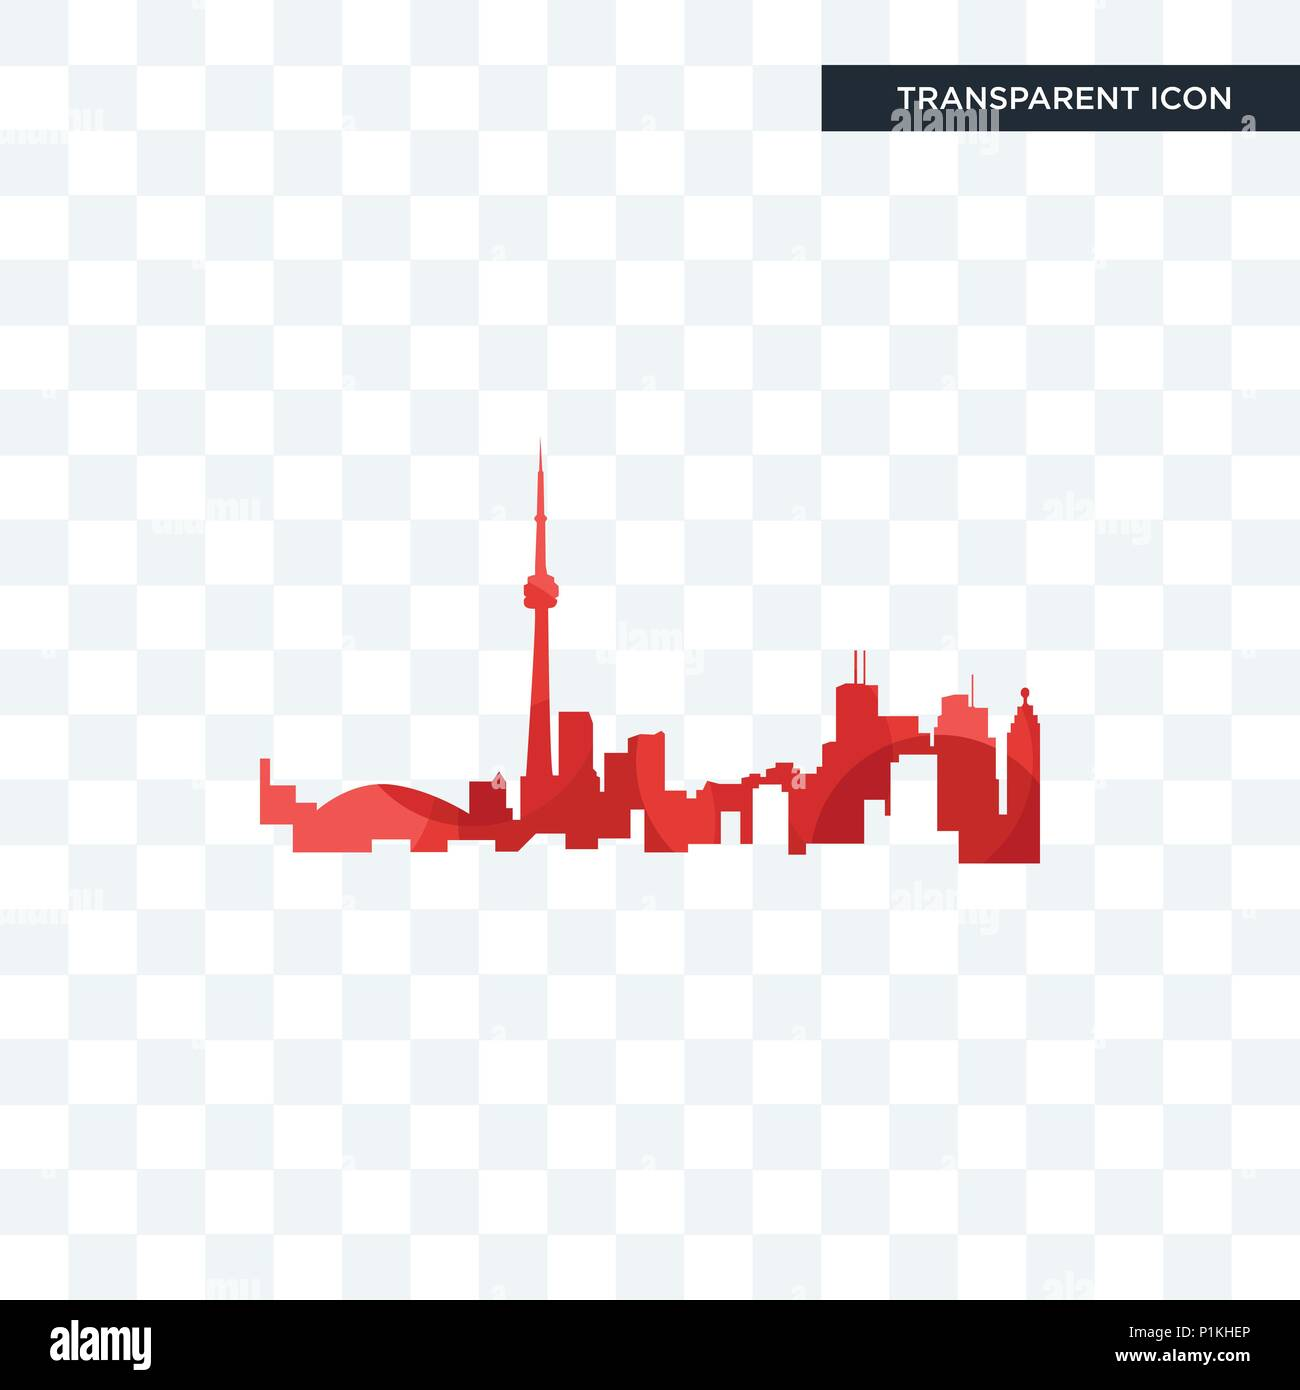 Toronto Skyline Vector Icon Isolated On Transparent Background Toronto Skyline Logo Concept Stock Vector Image Art Alamy,Graphic Design In Fashion Industry